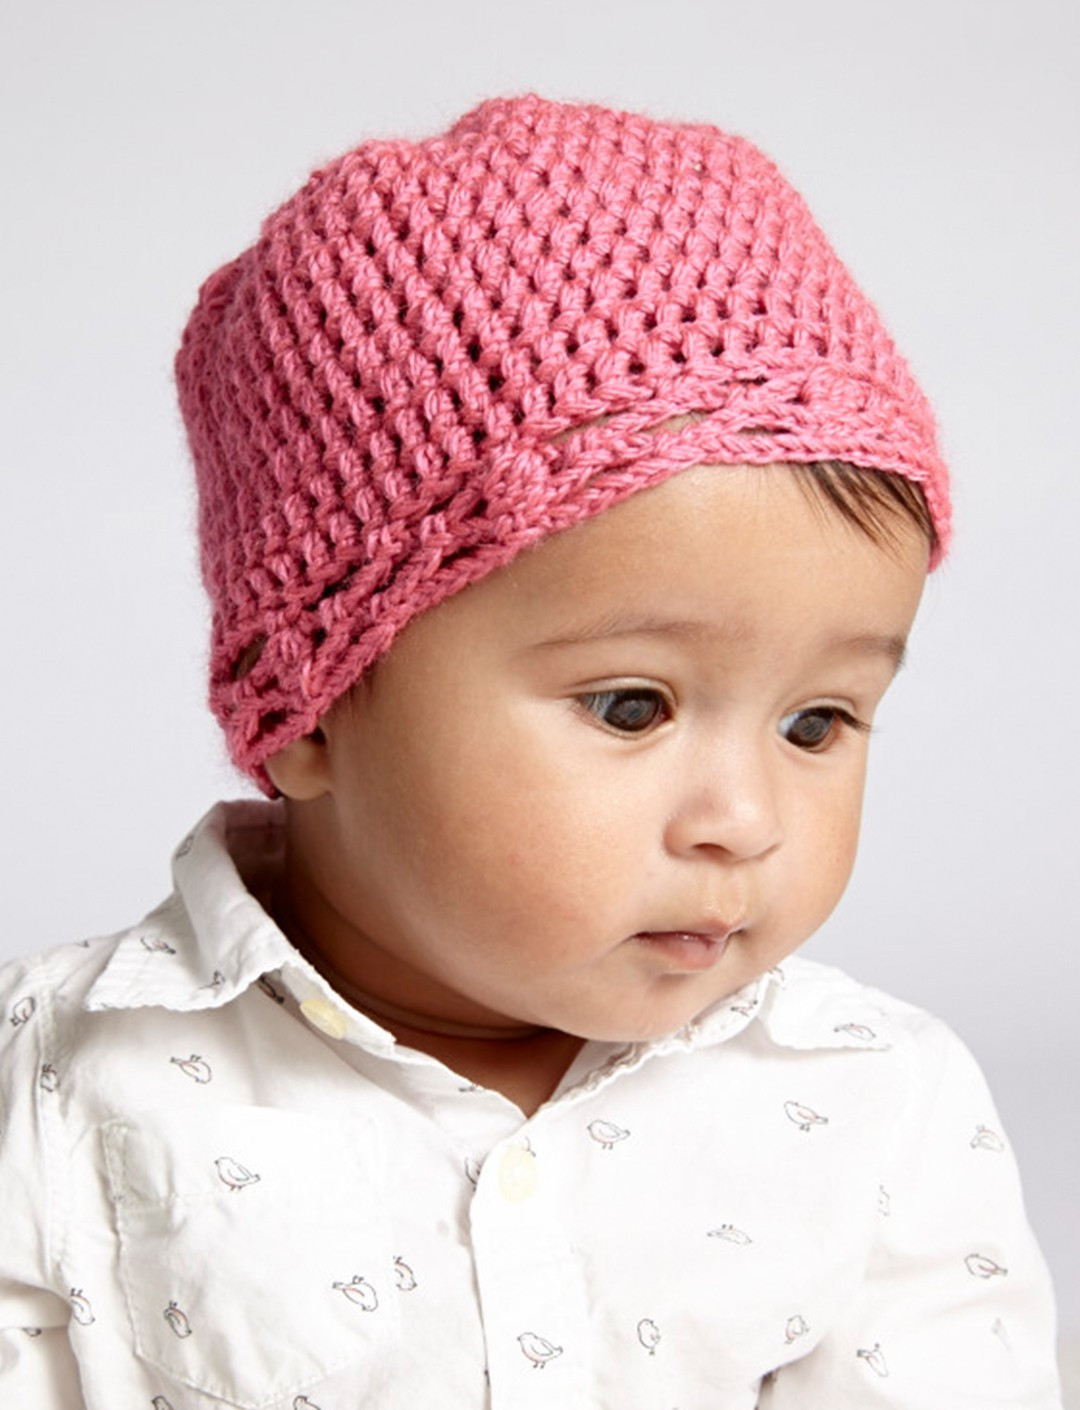 Luxury Bernat Crochet Baby Hat Crochet Pattern Crochet toddler Hat Pattern Of Delightful 40 Ideas Crochet toddler Hat Pattern